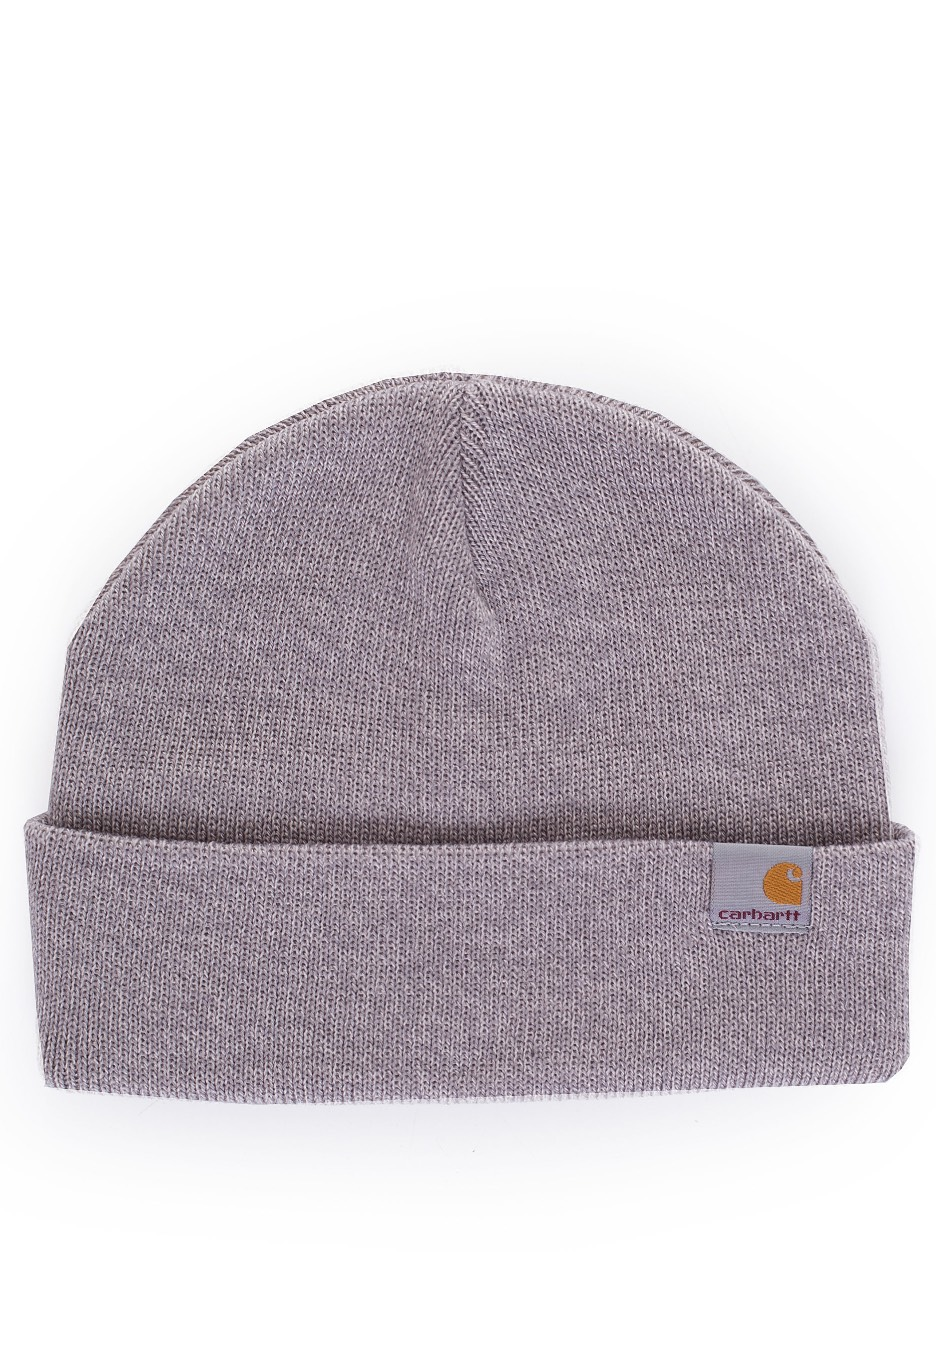 17f2ff6bd44e7 Carhartt WIP - Stratus Hat Low Grey Heather - Beanie - Streetwear Shop -  Impericon.com UK